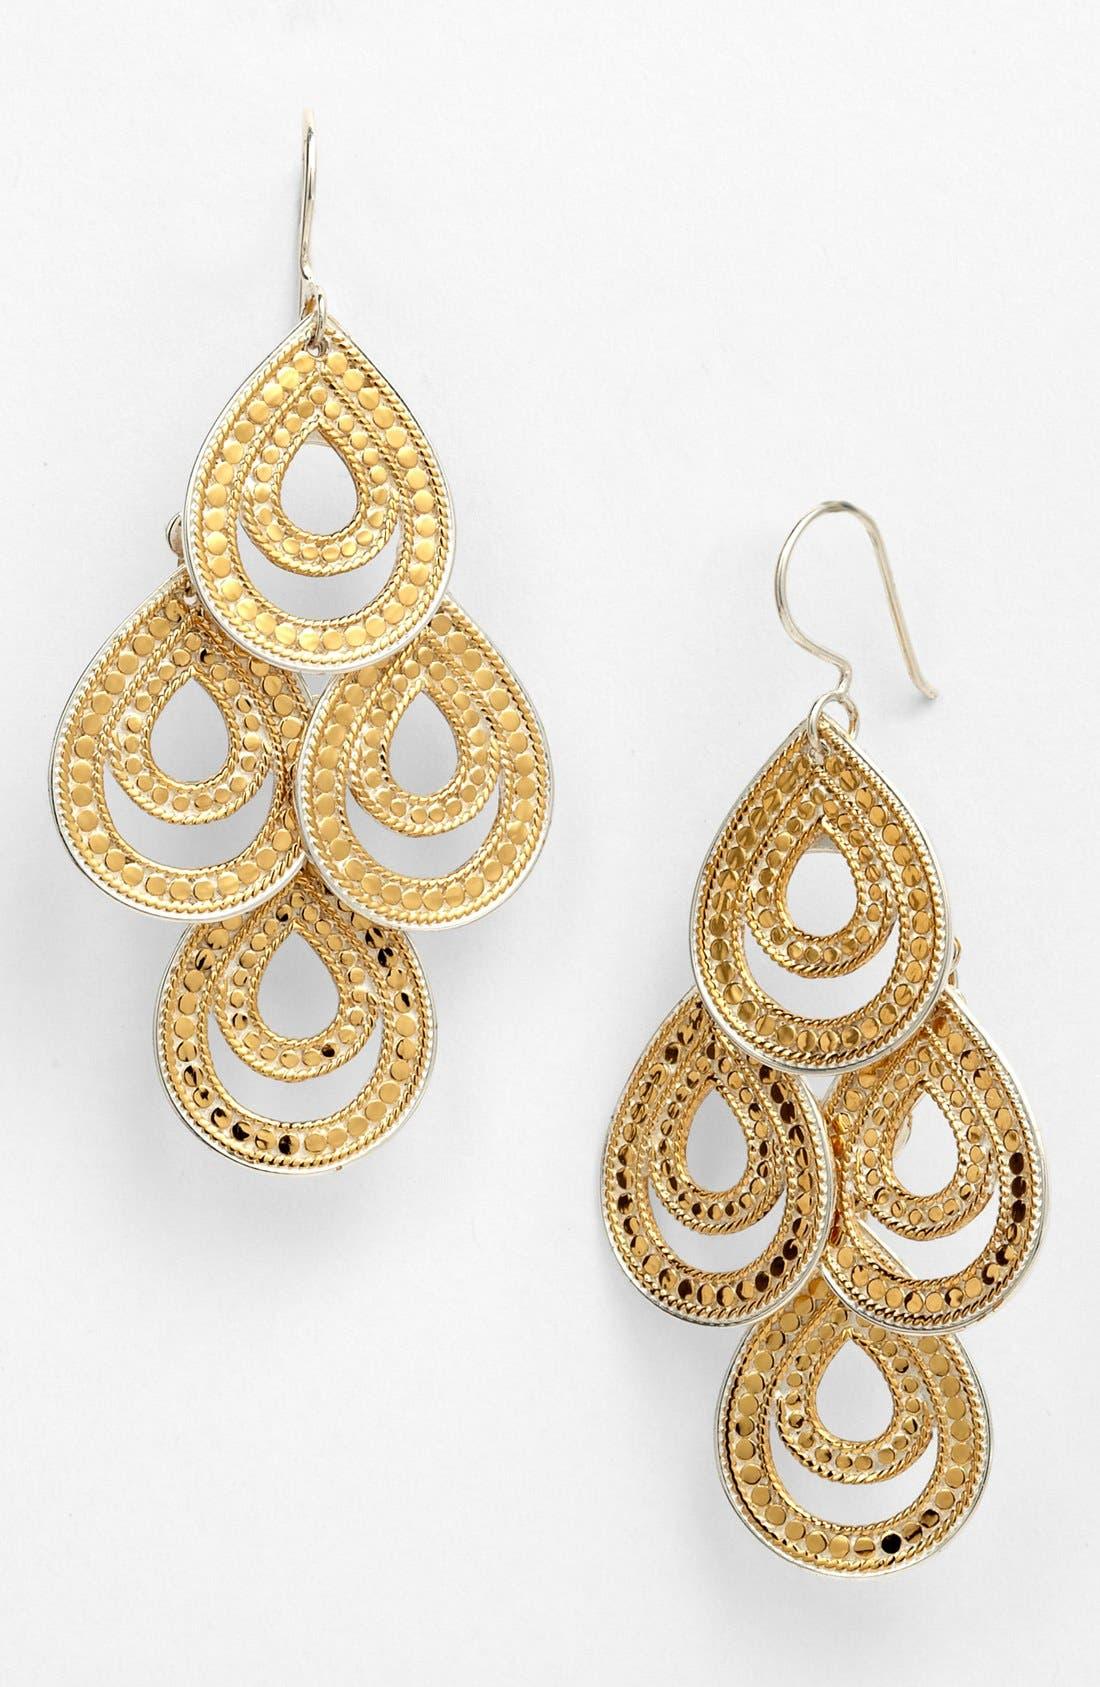 Main Image - Anna Beck 'Gili' Open Chandelier Earrings